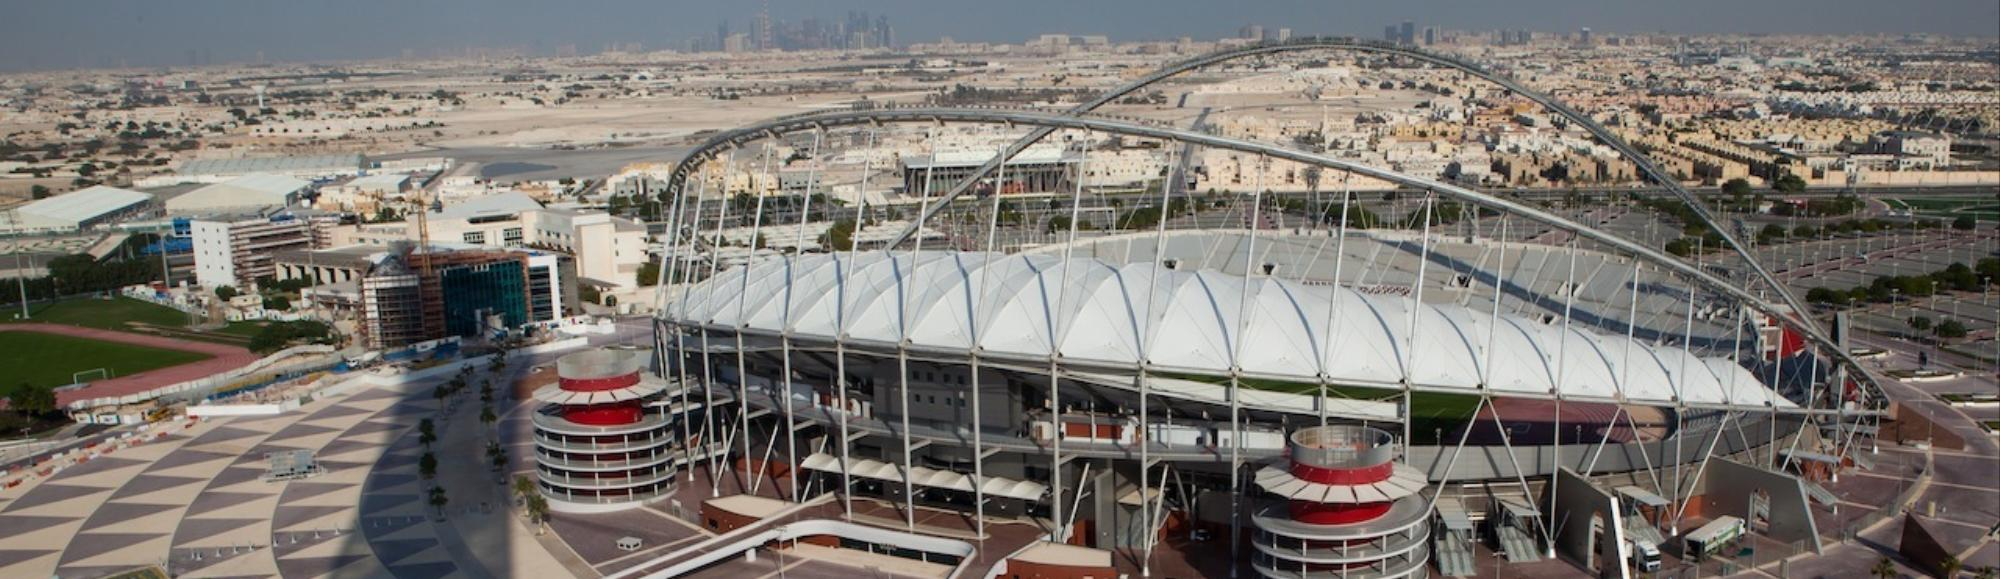 Giving the World Cup to Qatar Was a Really Stupid Idea